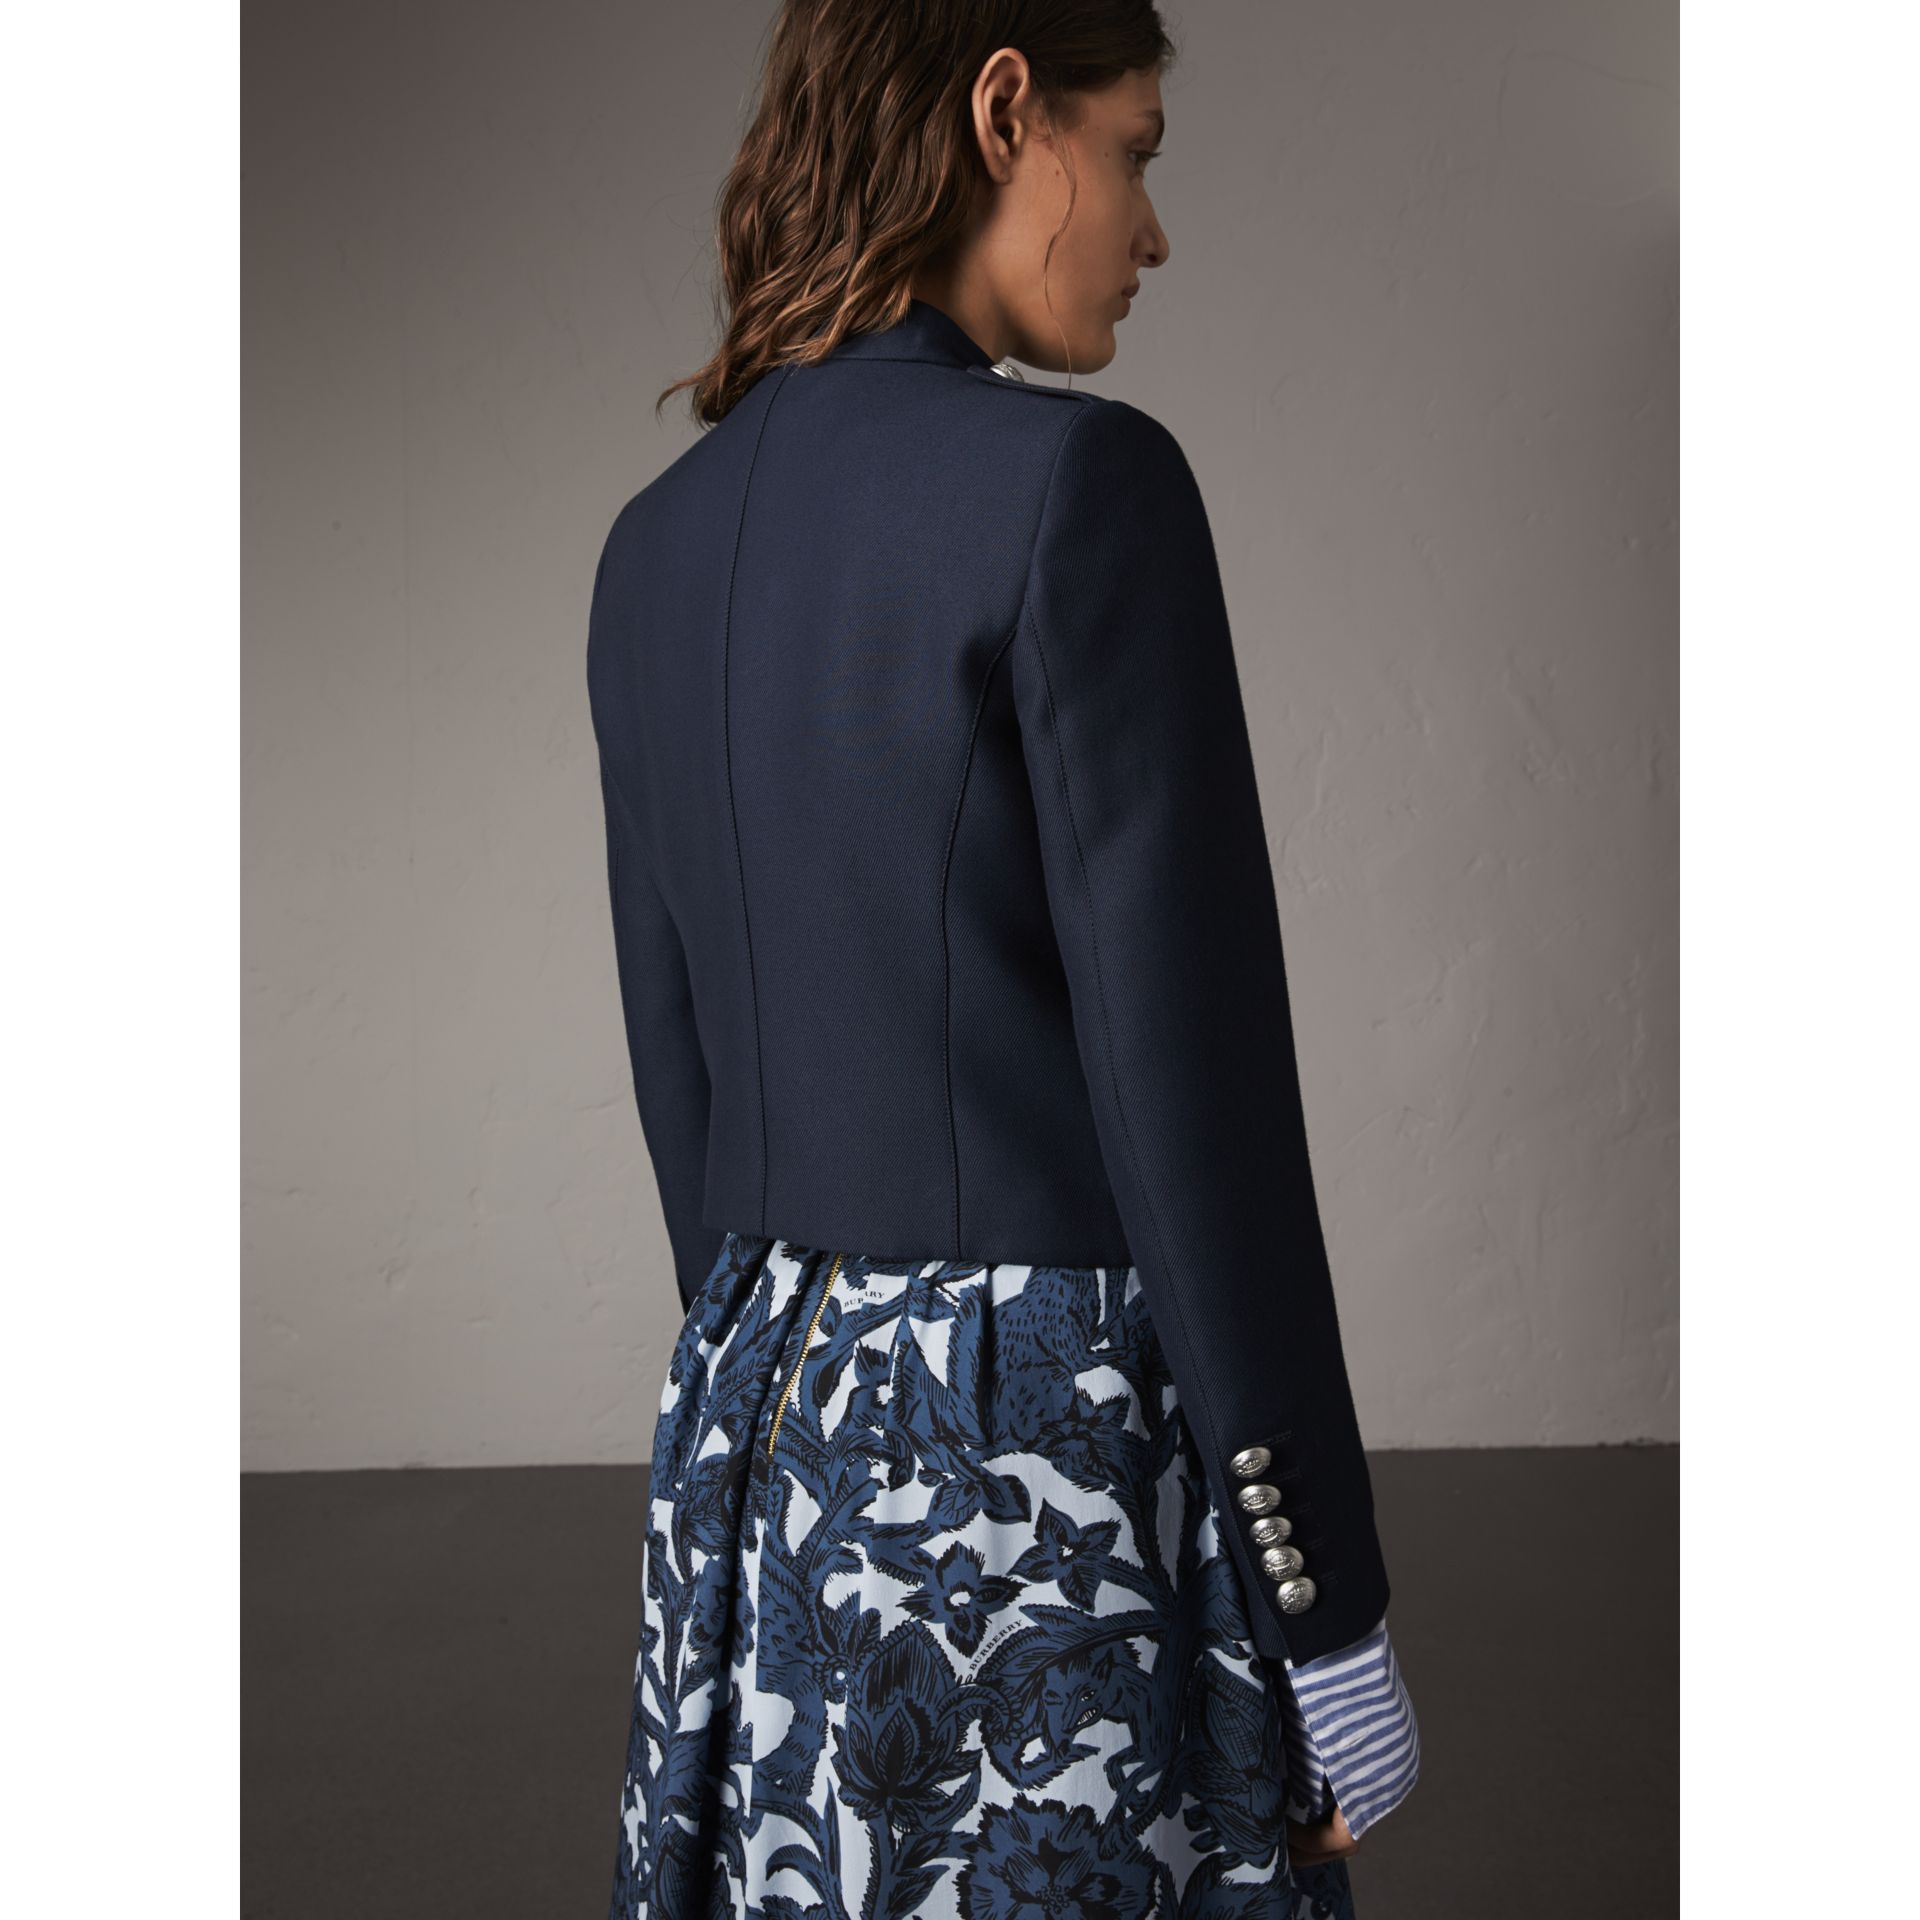 Resin Button Wool Cotton Blend Jacket in Ink Blue - Women | Burberry United Kingdom - gallery image 2